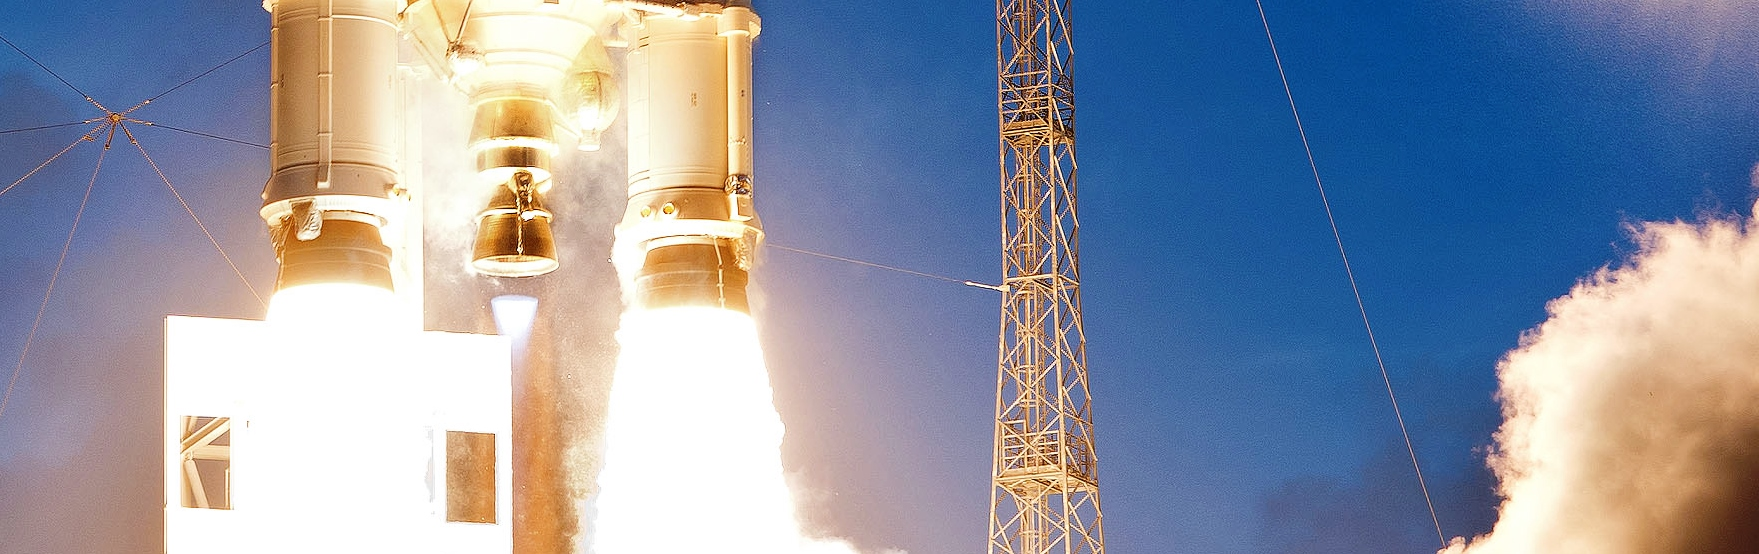 Ariane 5 rocket lifts off From Kourou, French Guiana Arianespace image posted on SpaceFlight Insider